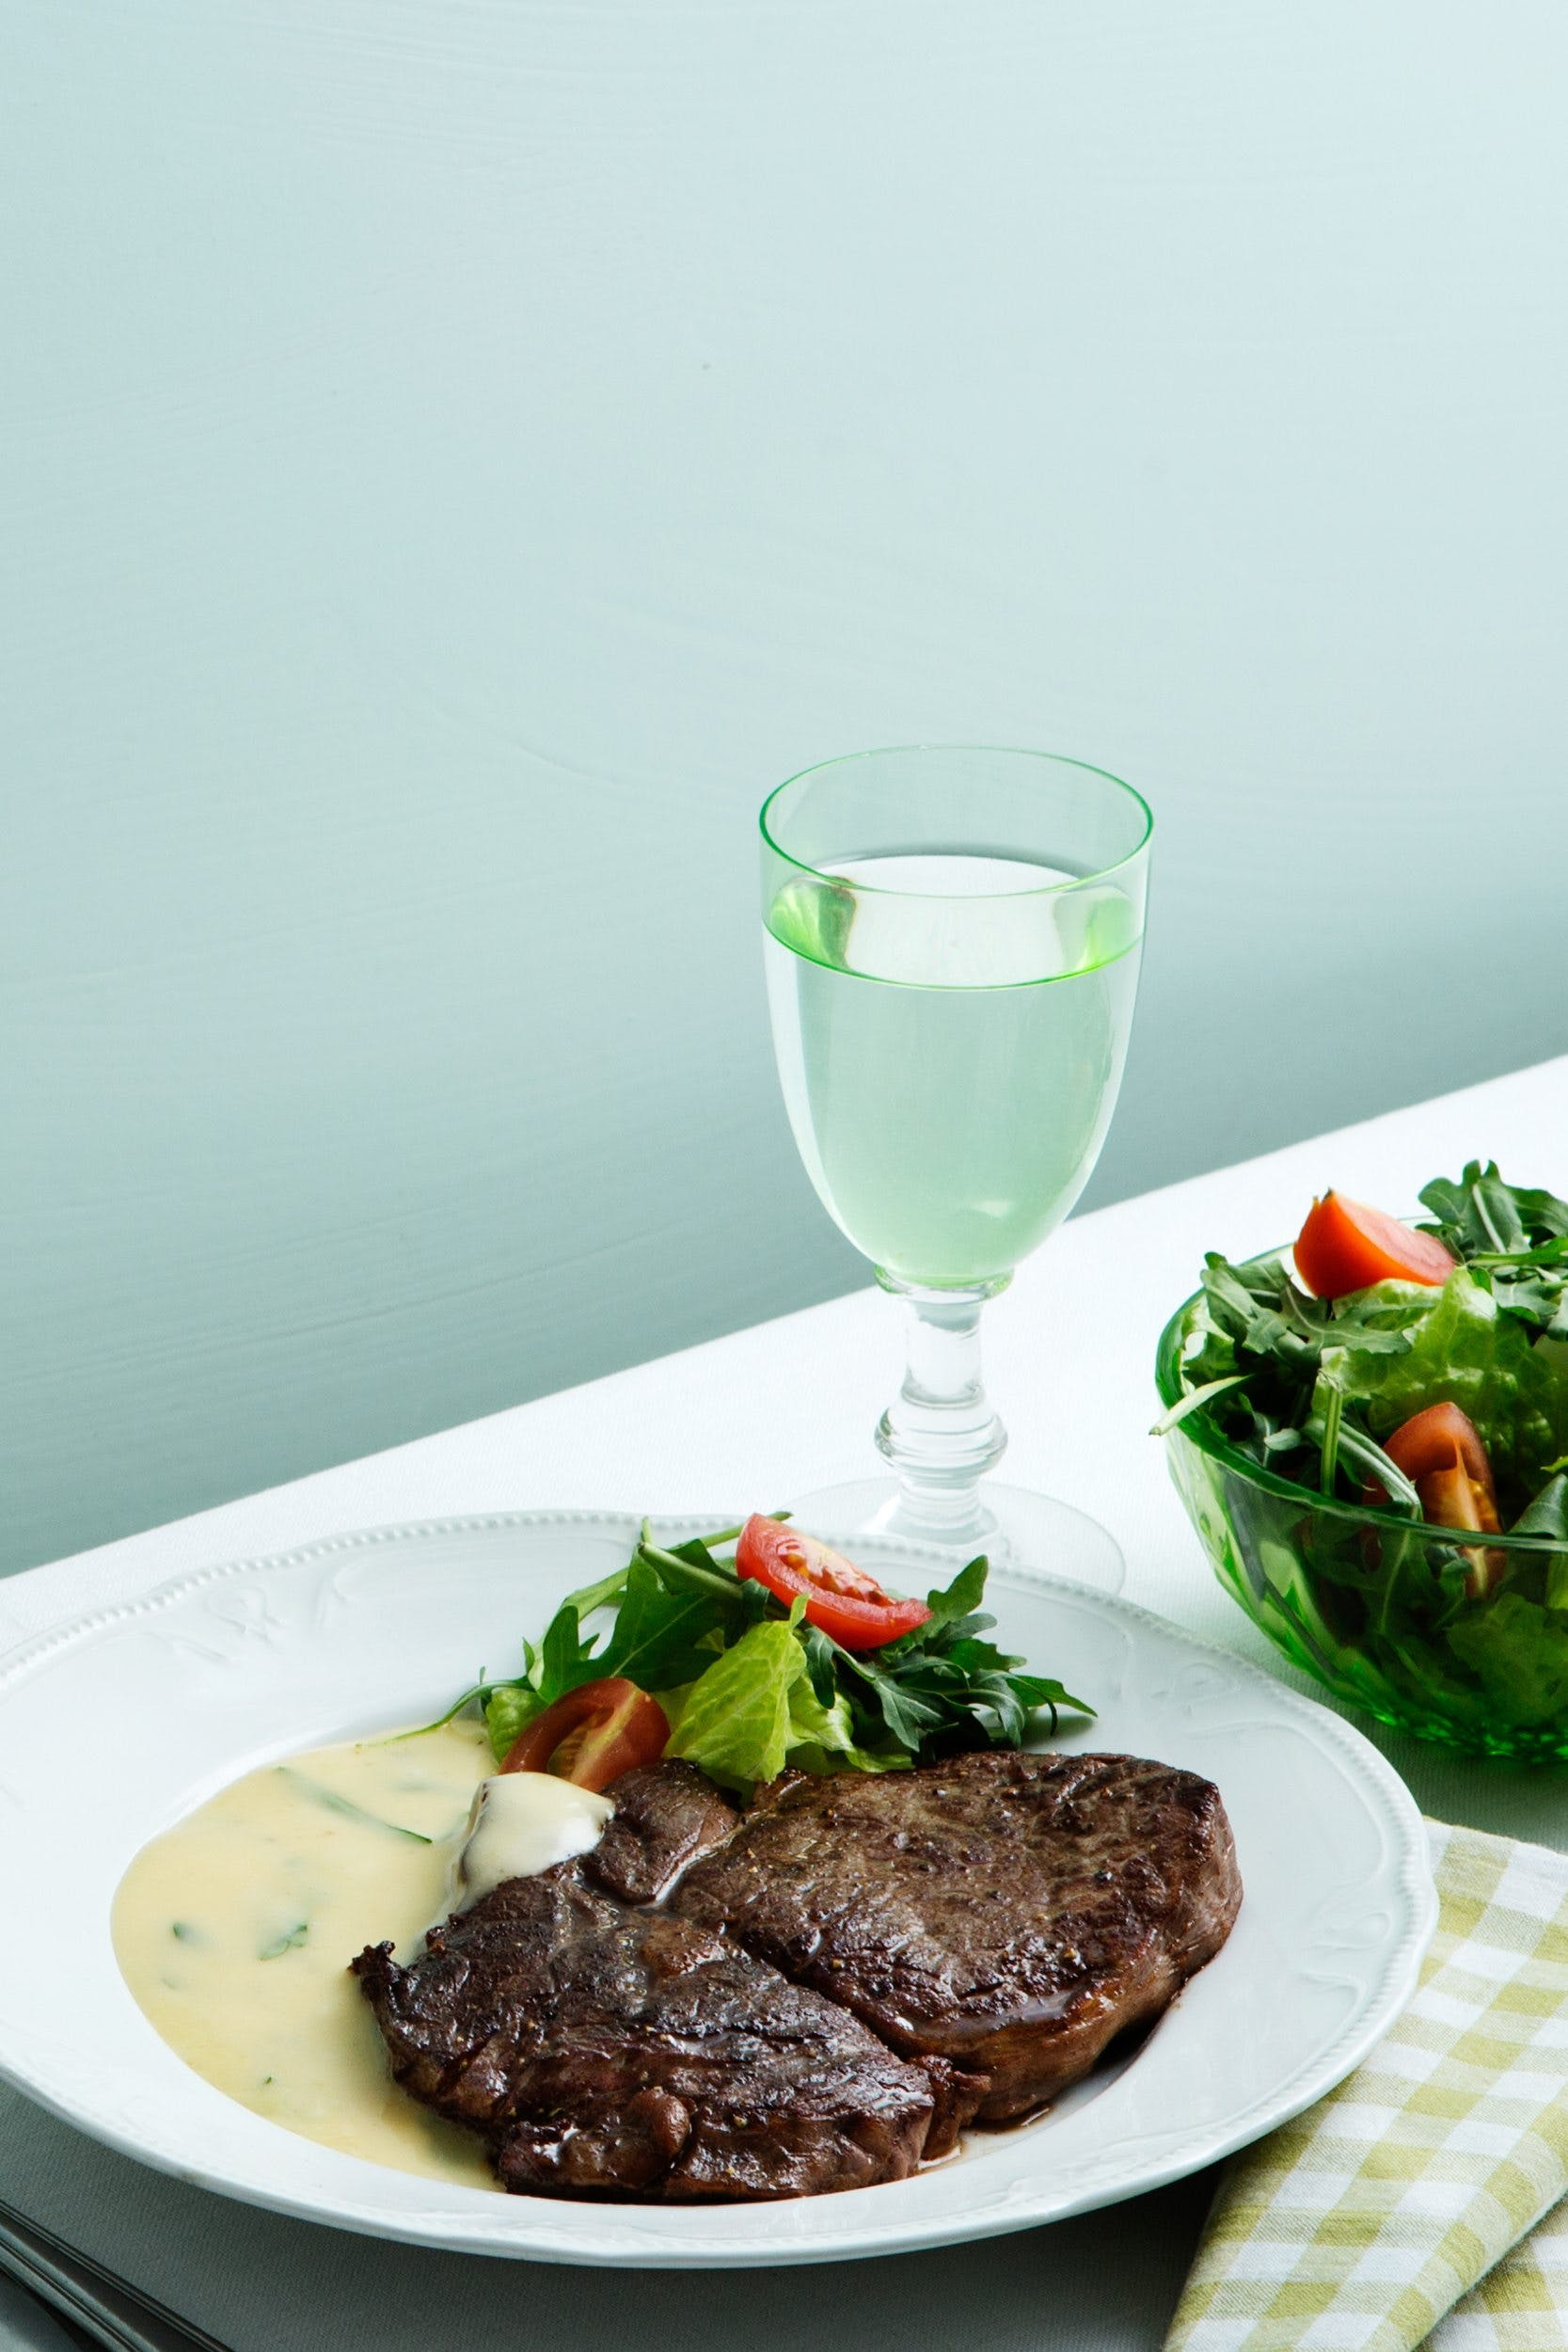 Keto steak with béarnaise sauce